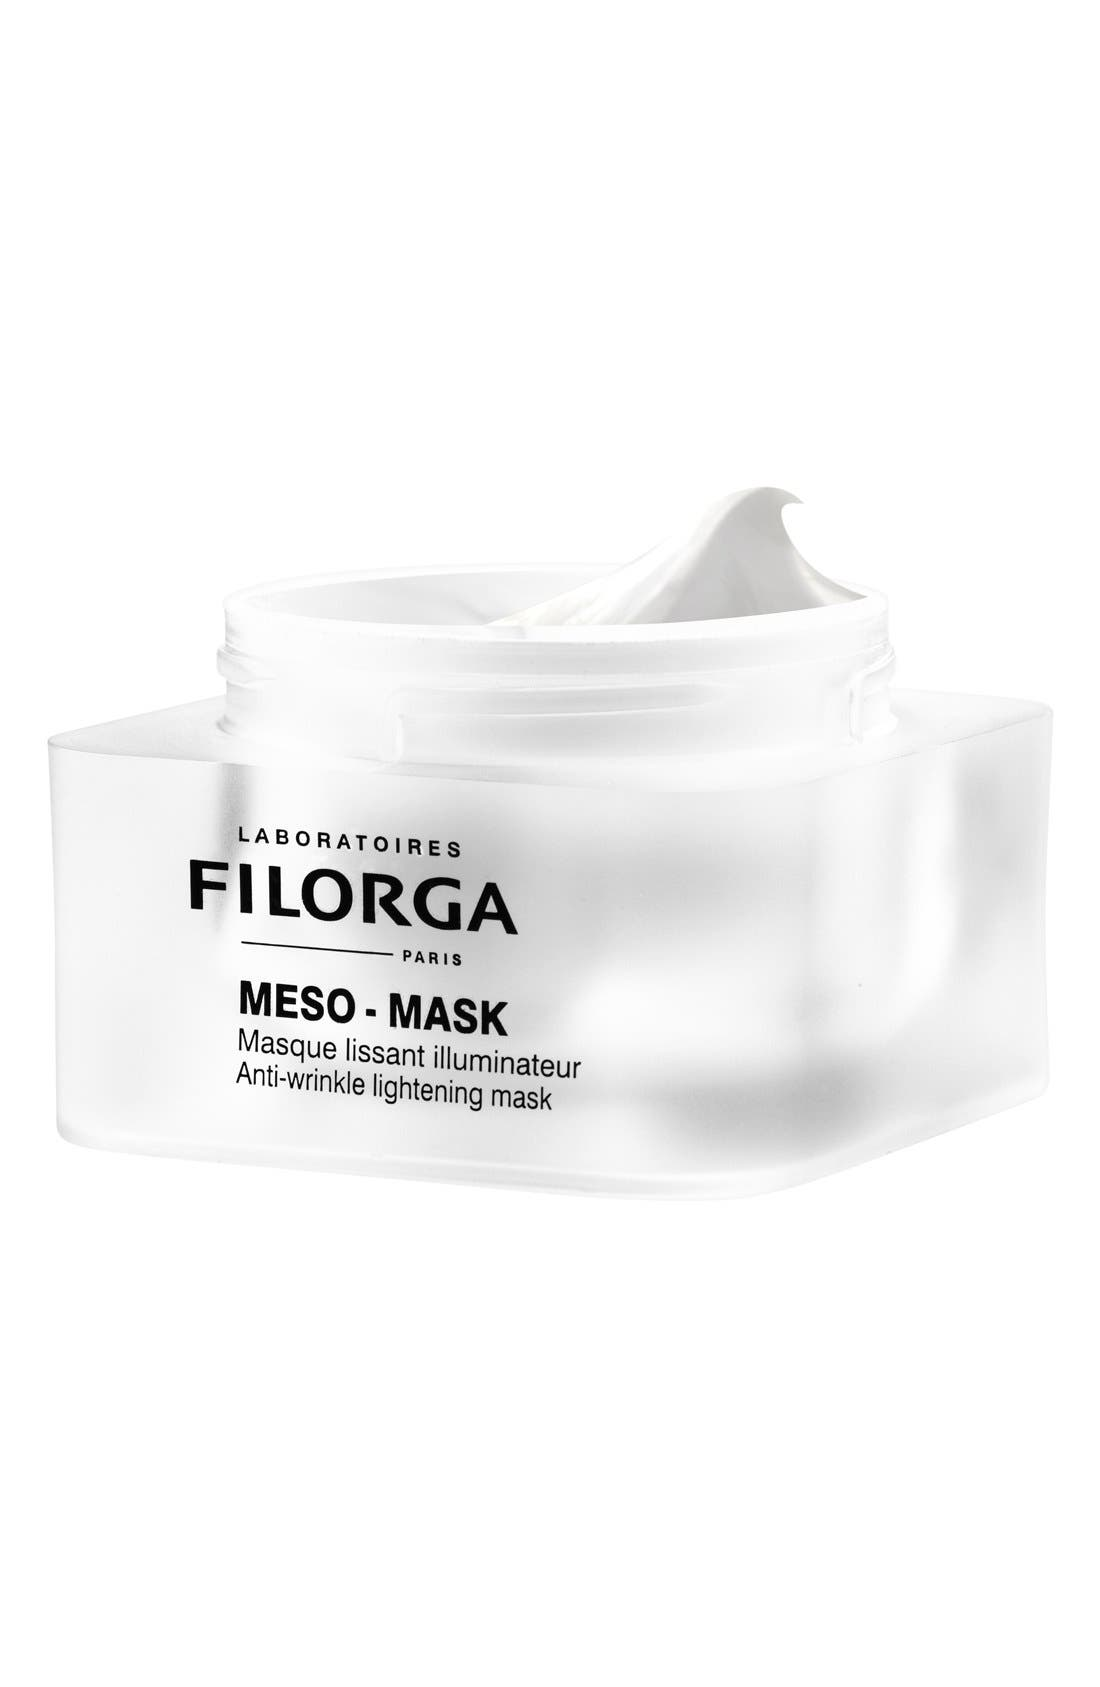 Filorga 'Meso-Mask' Anti-Wrinkle Lightening Mask